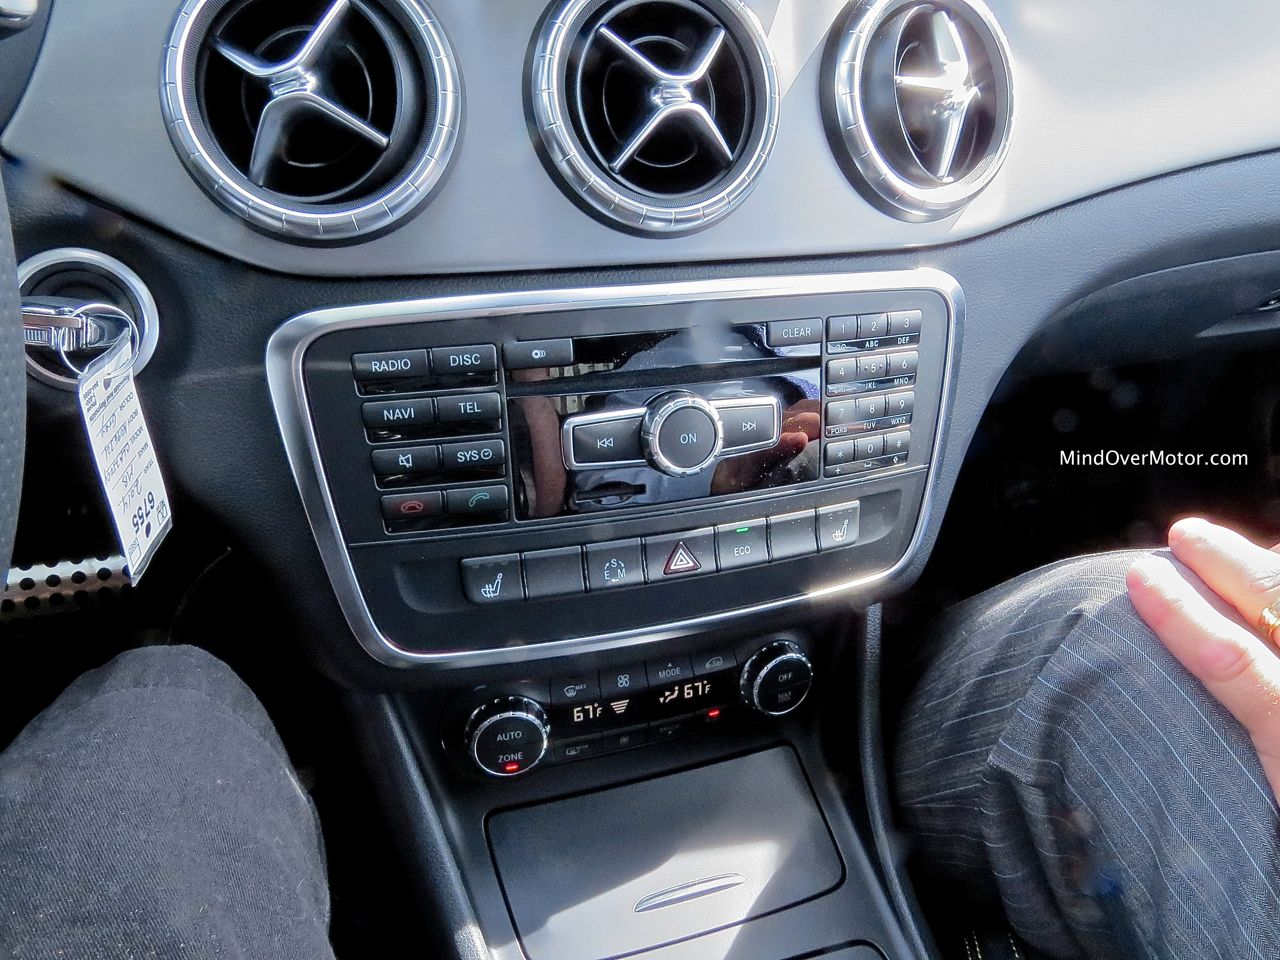 Mercedes-Benz CLA250 Center Stack